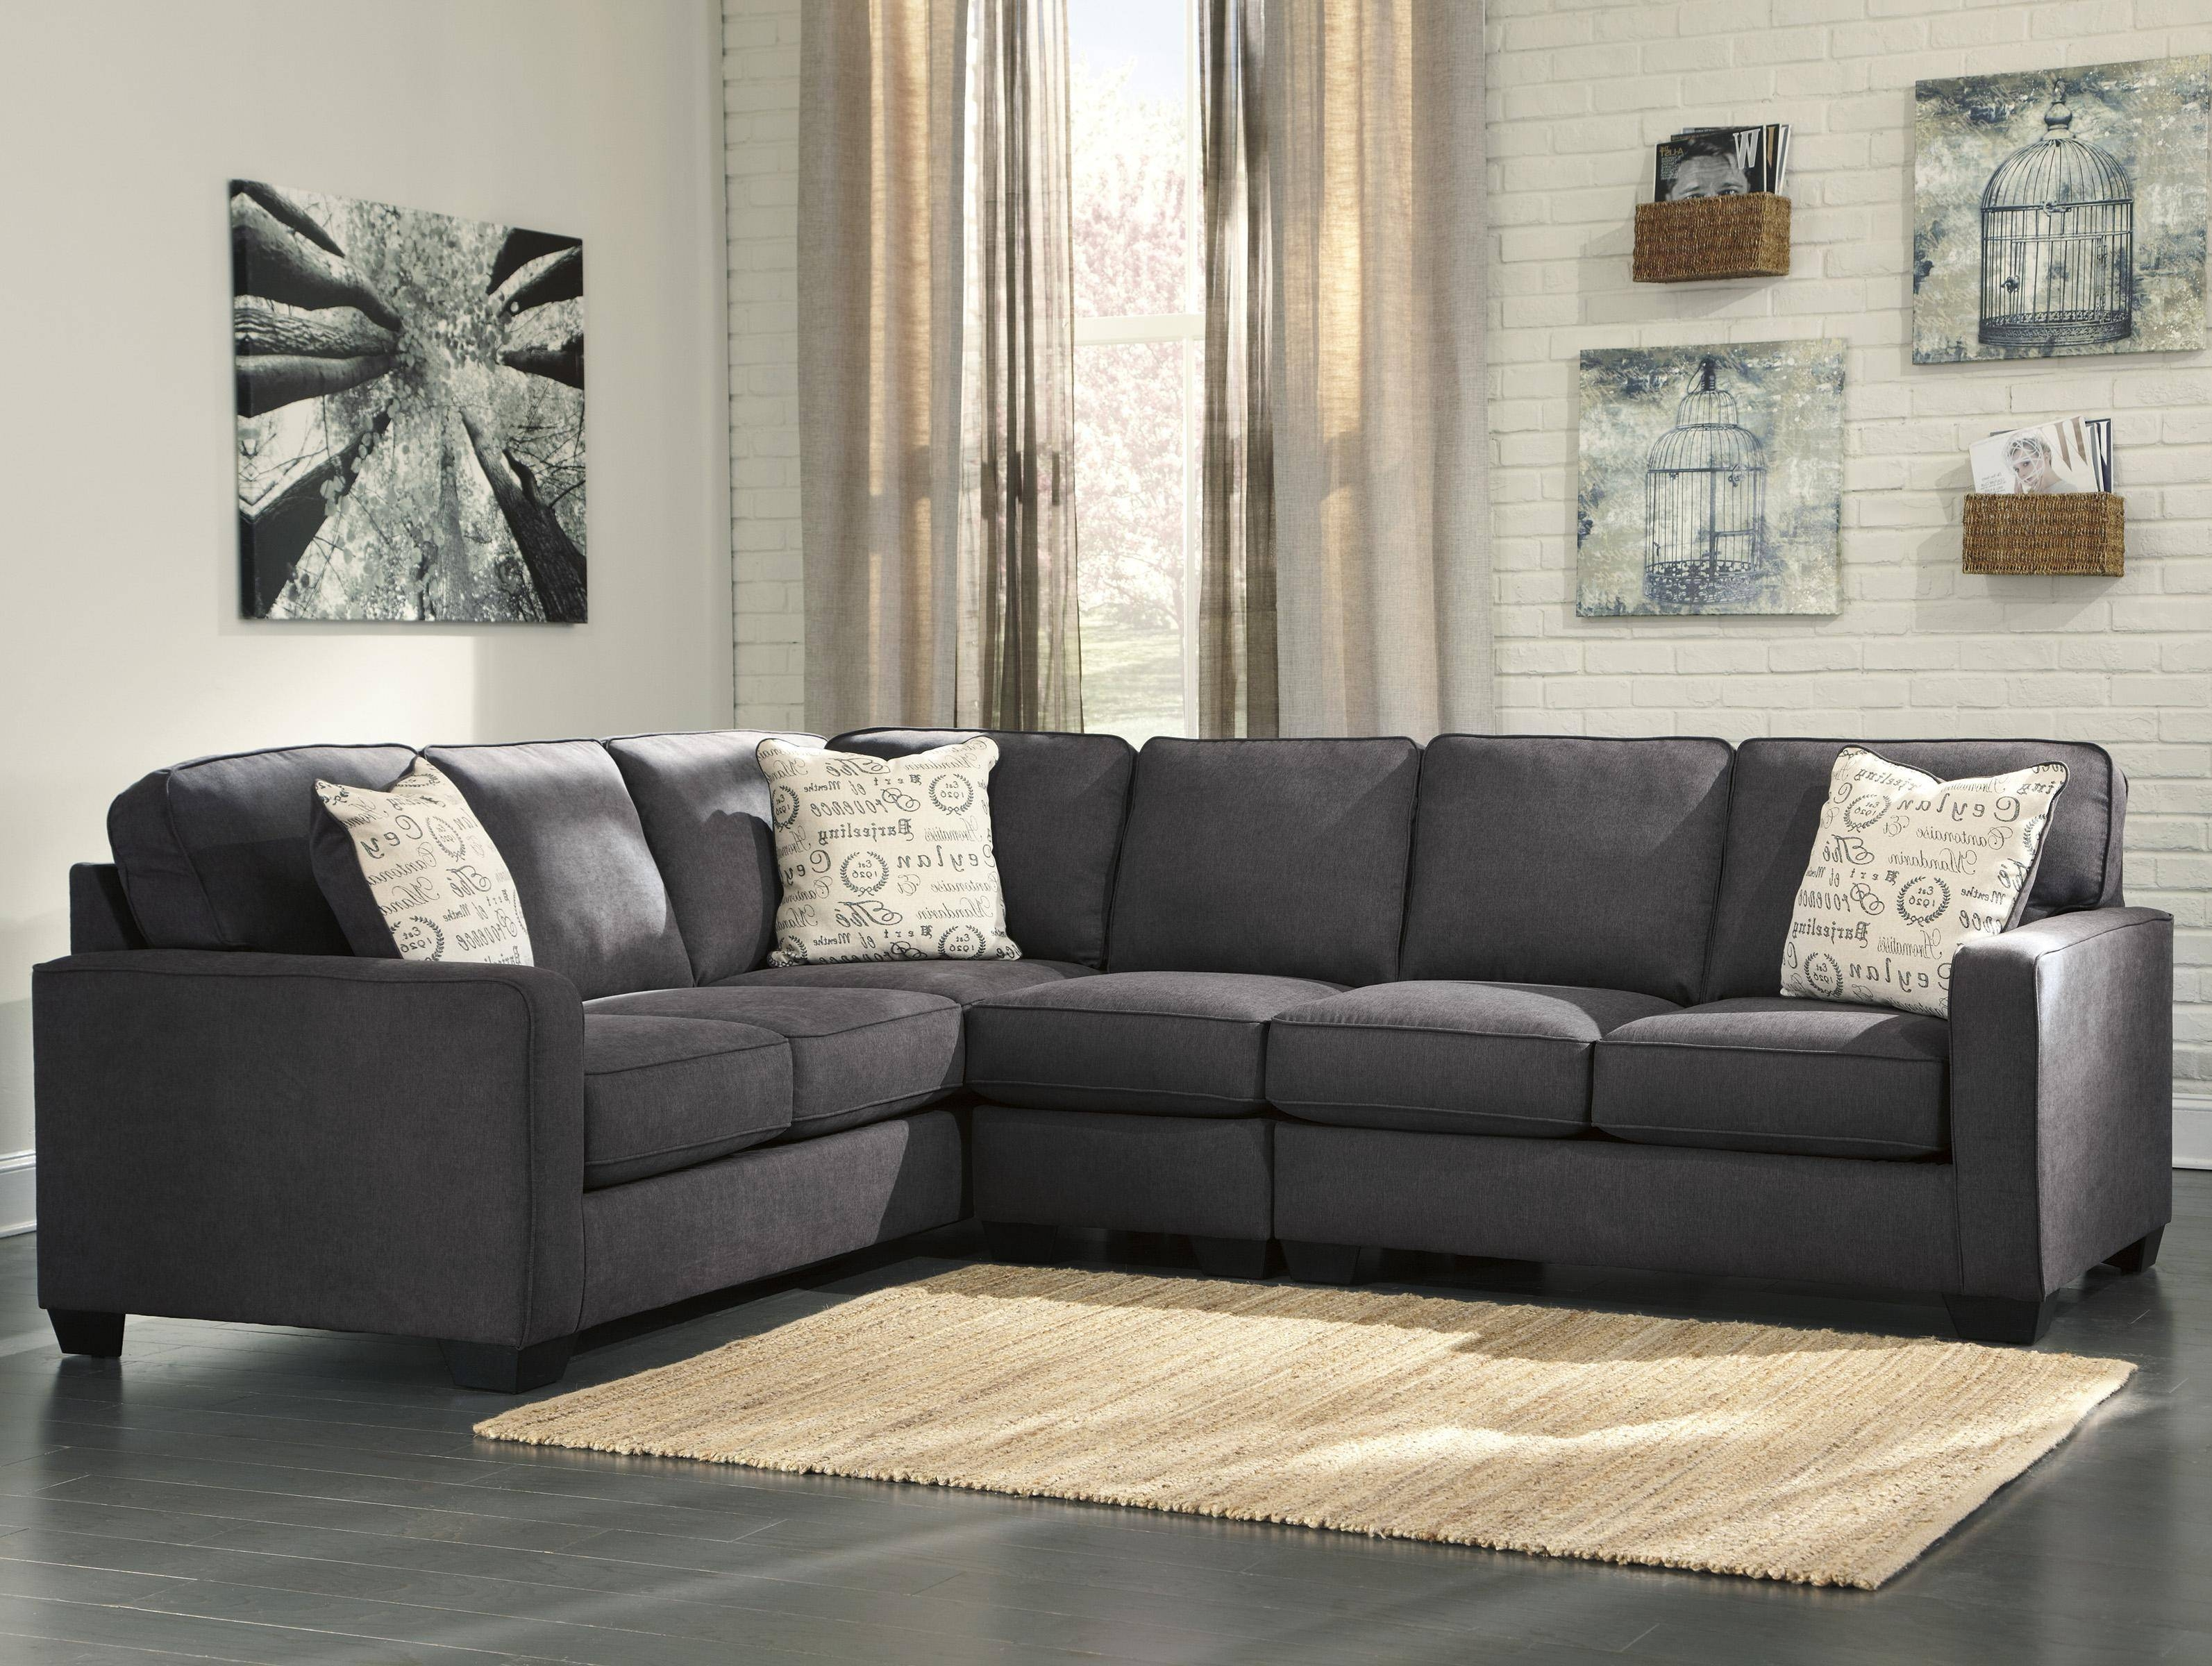 Living Room: Elegant Ashley Leather Sectional Sofa For Comfortable for Ashley Furniture Corduroy Sectional Sofas (Image 12 of 15)